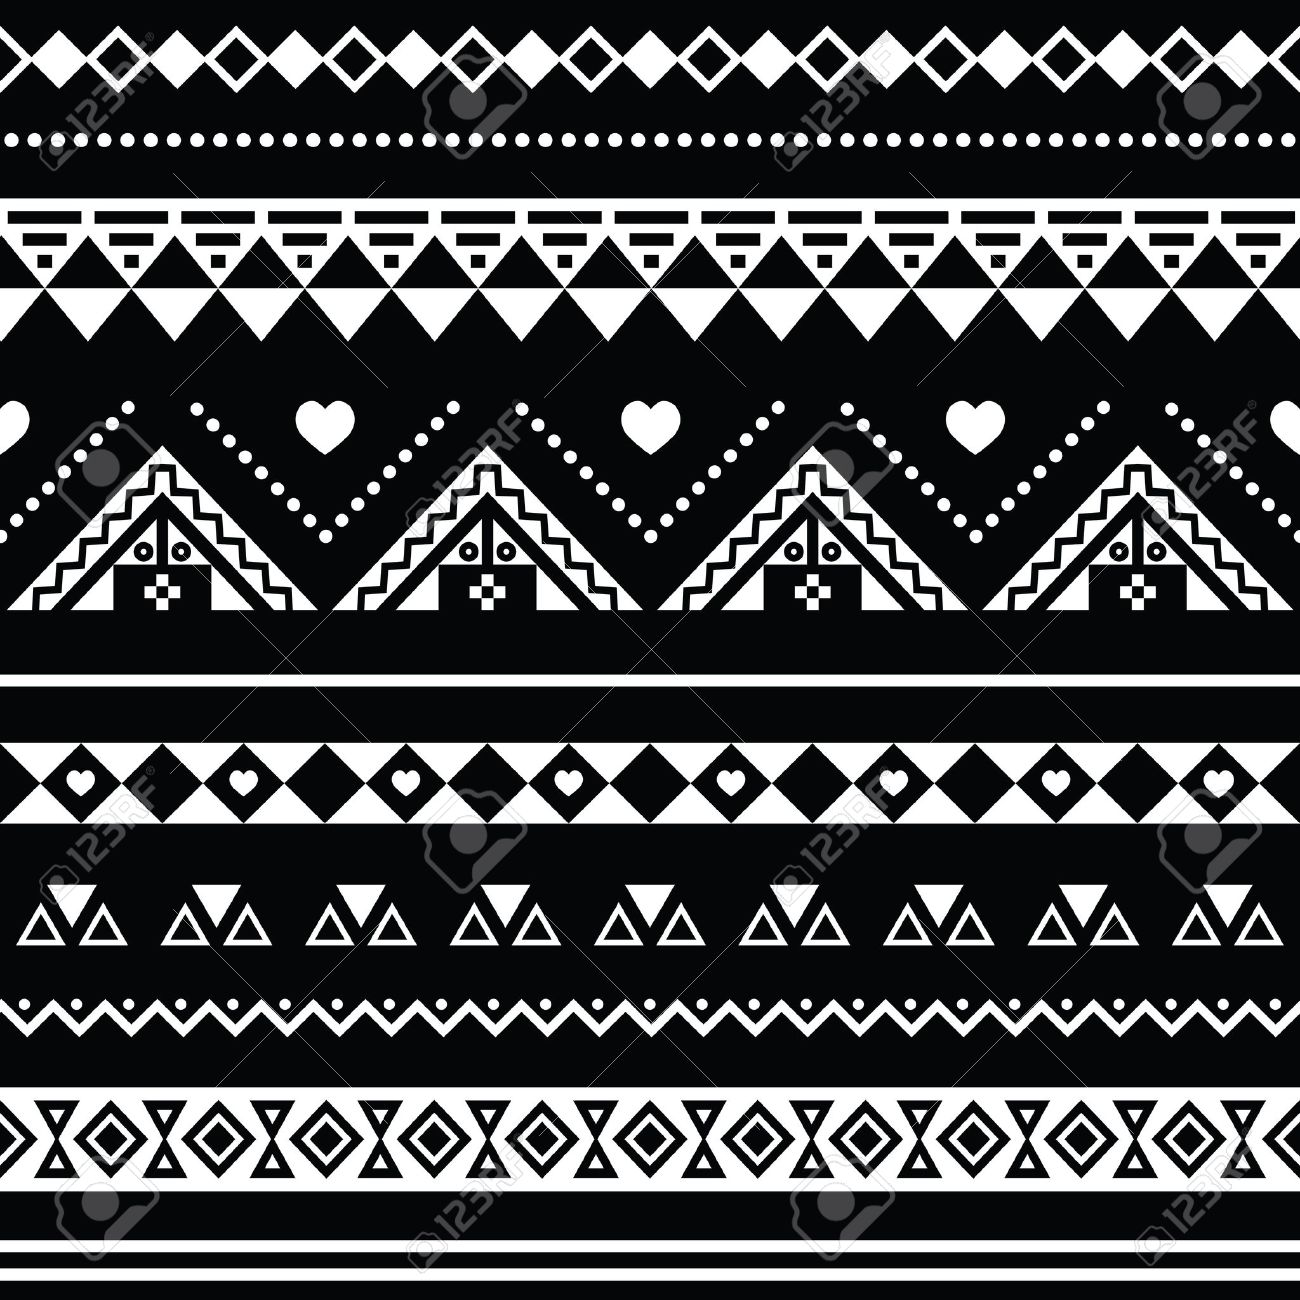 Aztec Designs And Patterns Aztec Seamless Pattern Tribal